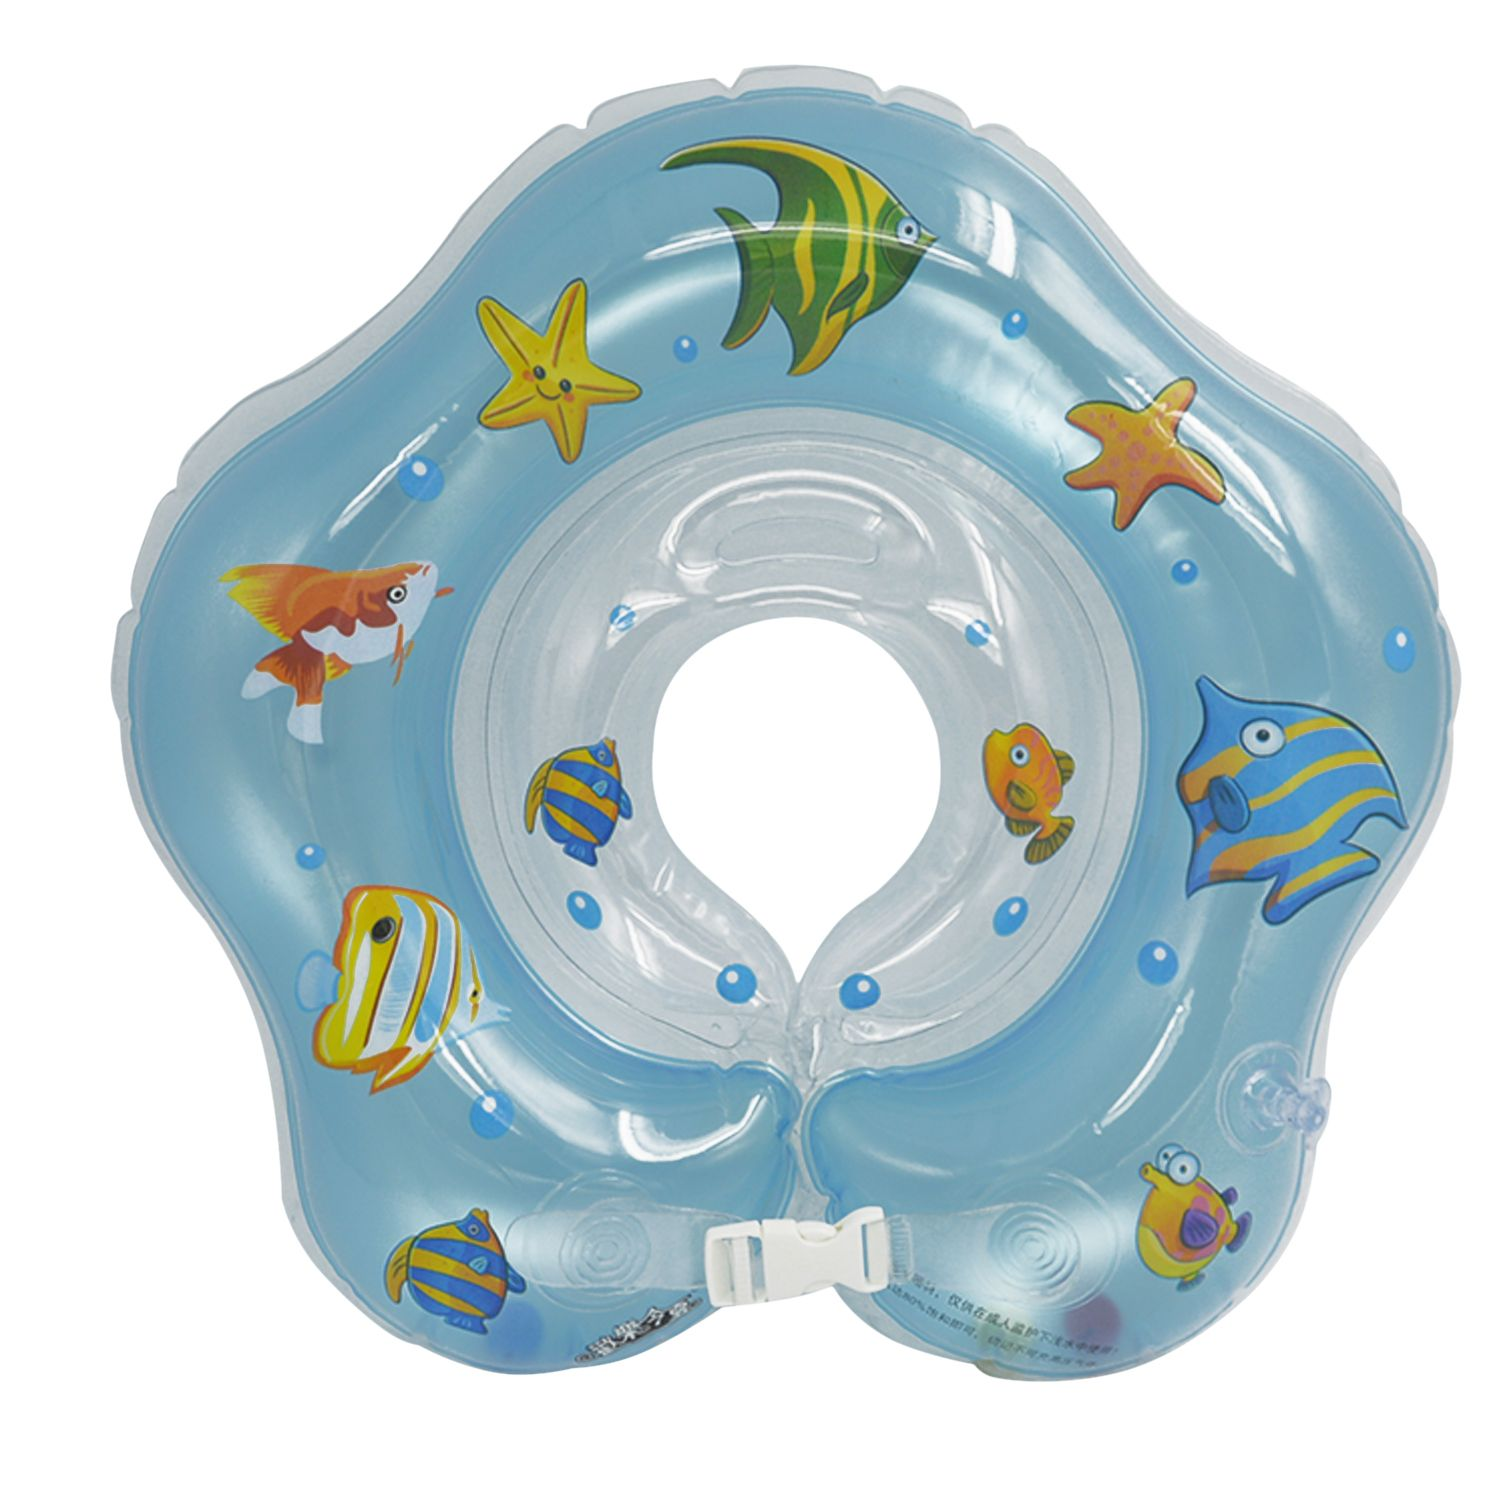 Underwater World Baby Equipment Infant Bath Inflatable Swim Ring ...